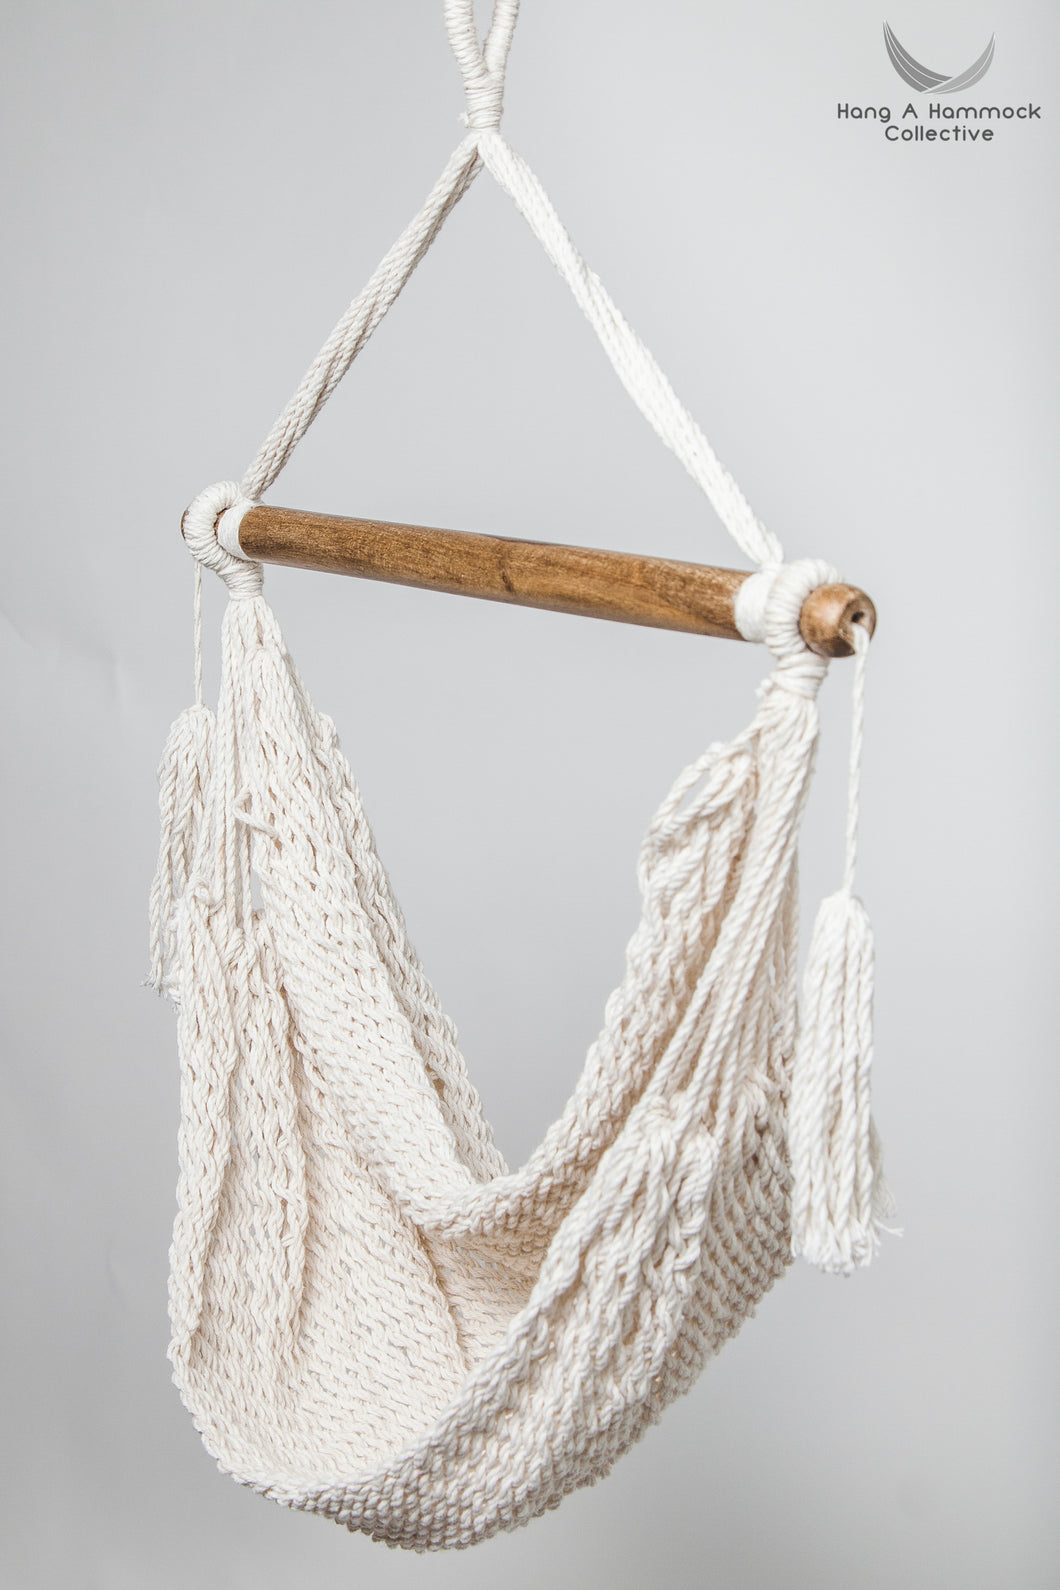 Dolls furniture - hammock chair - studio photo (Handmade in Nicaragua)